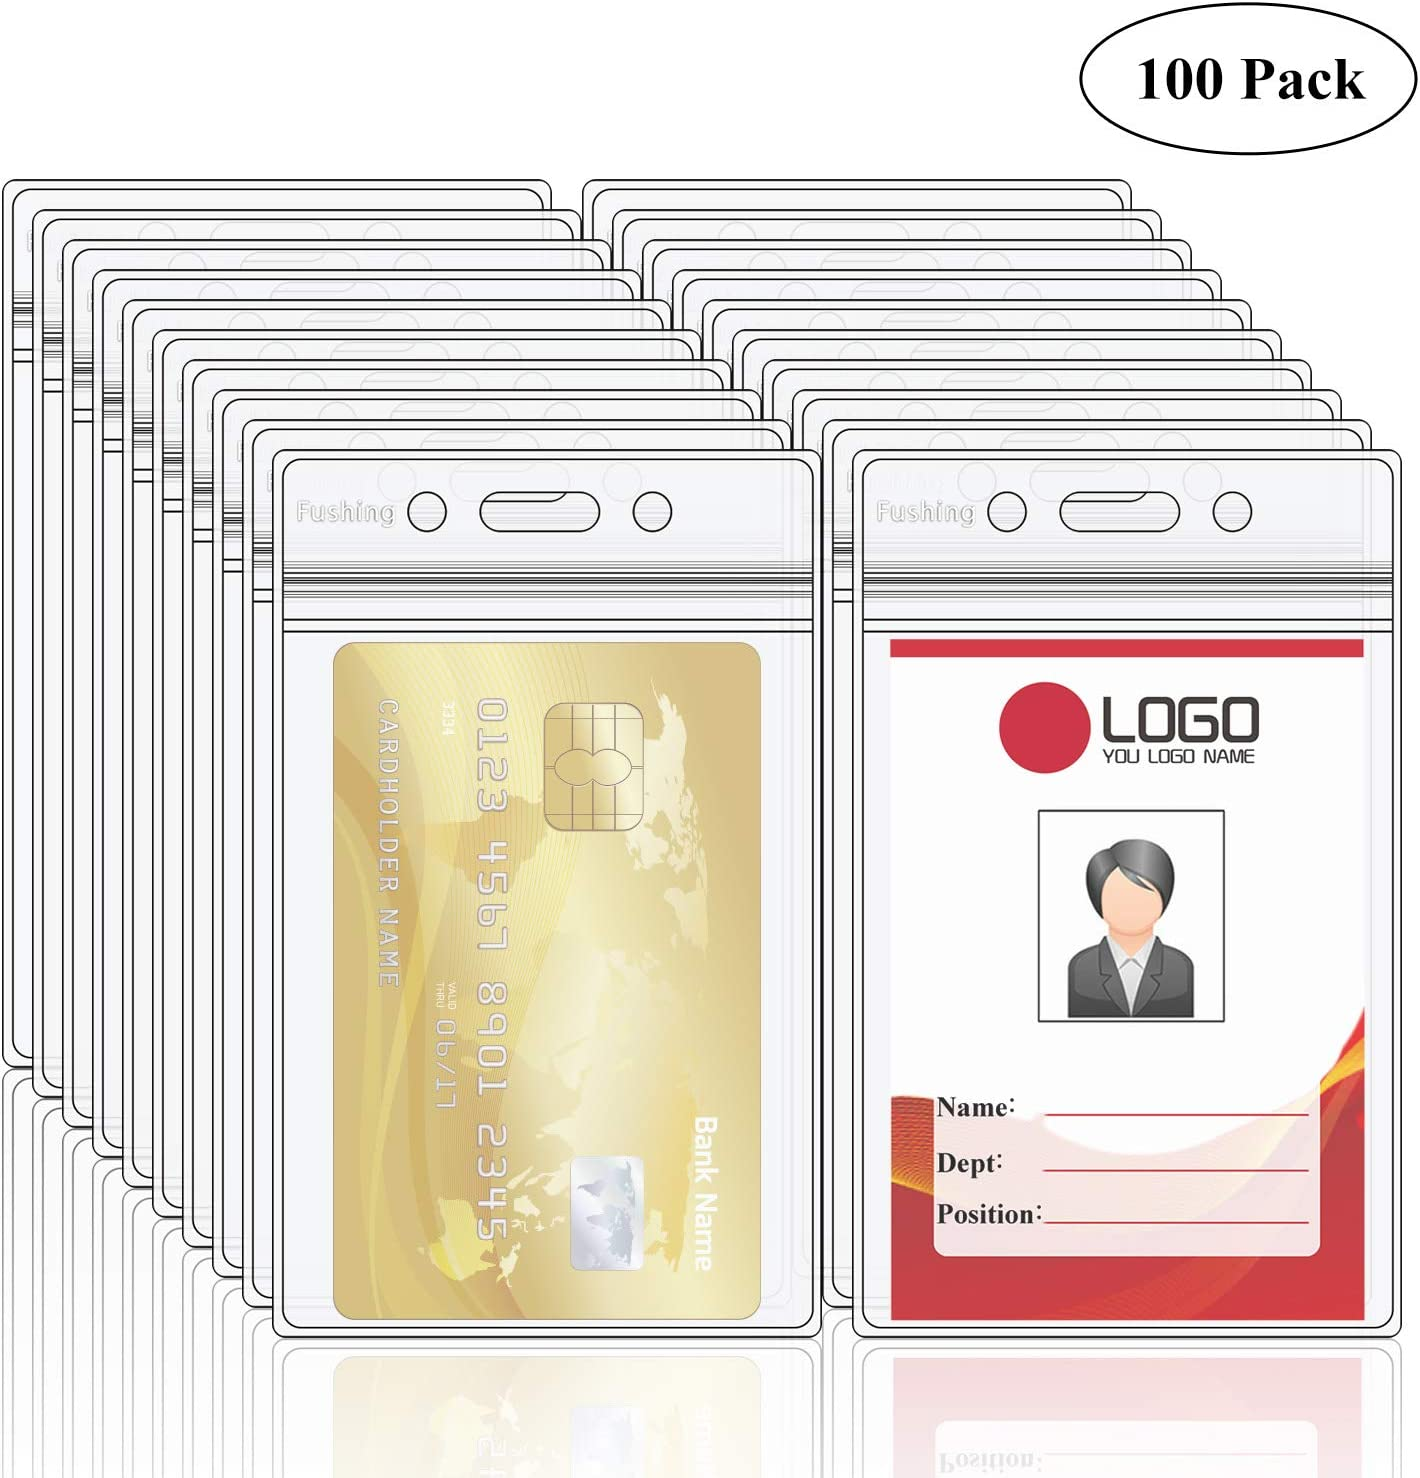 Fushing Pack of 100 Clear Plastic Vertical Badge Holders, Name Tag Holders, Card Holders (L) : Office Products